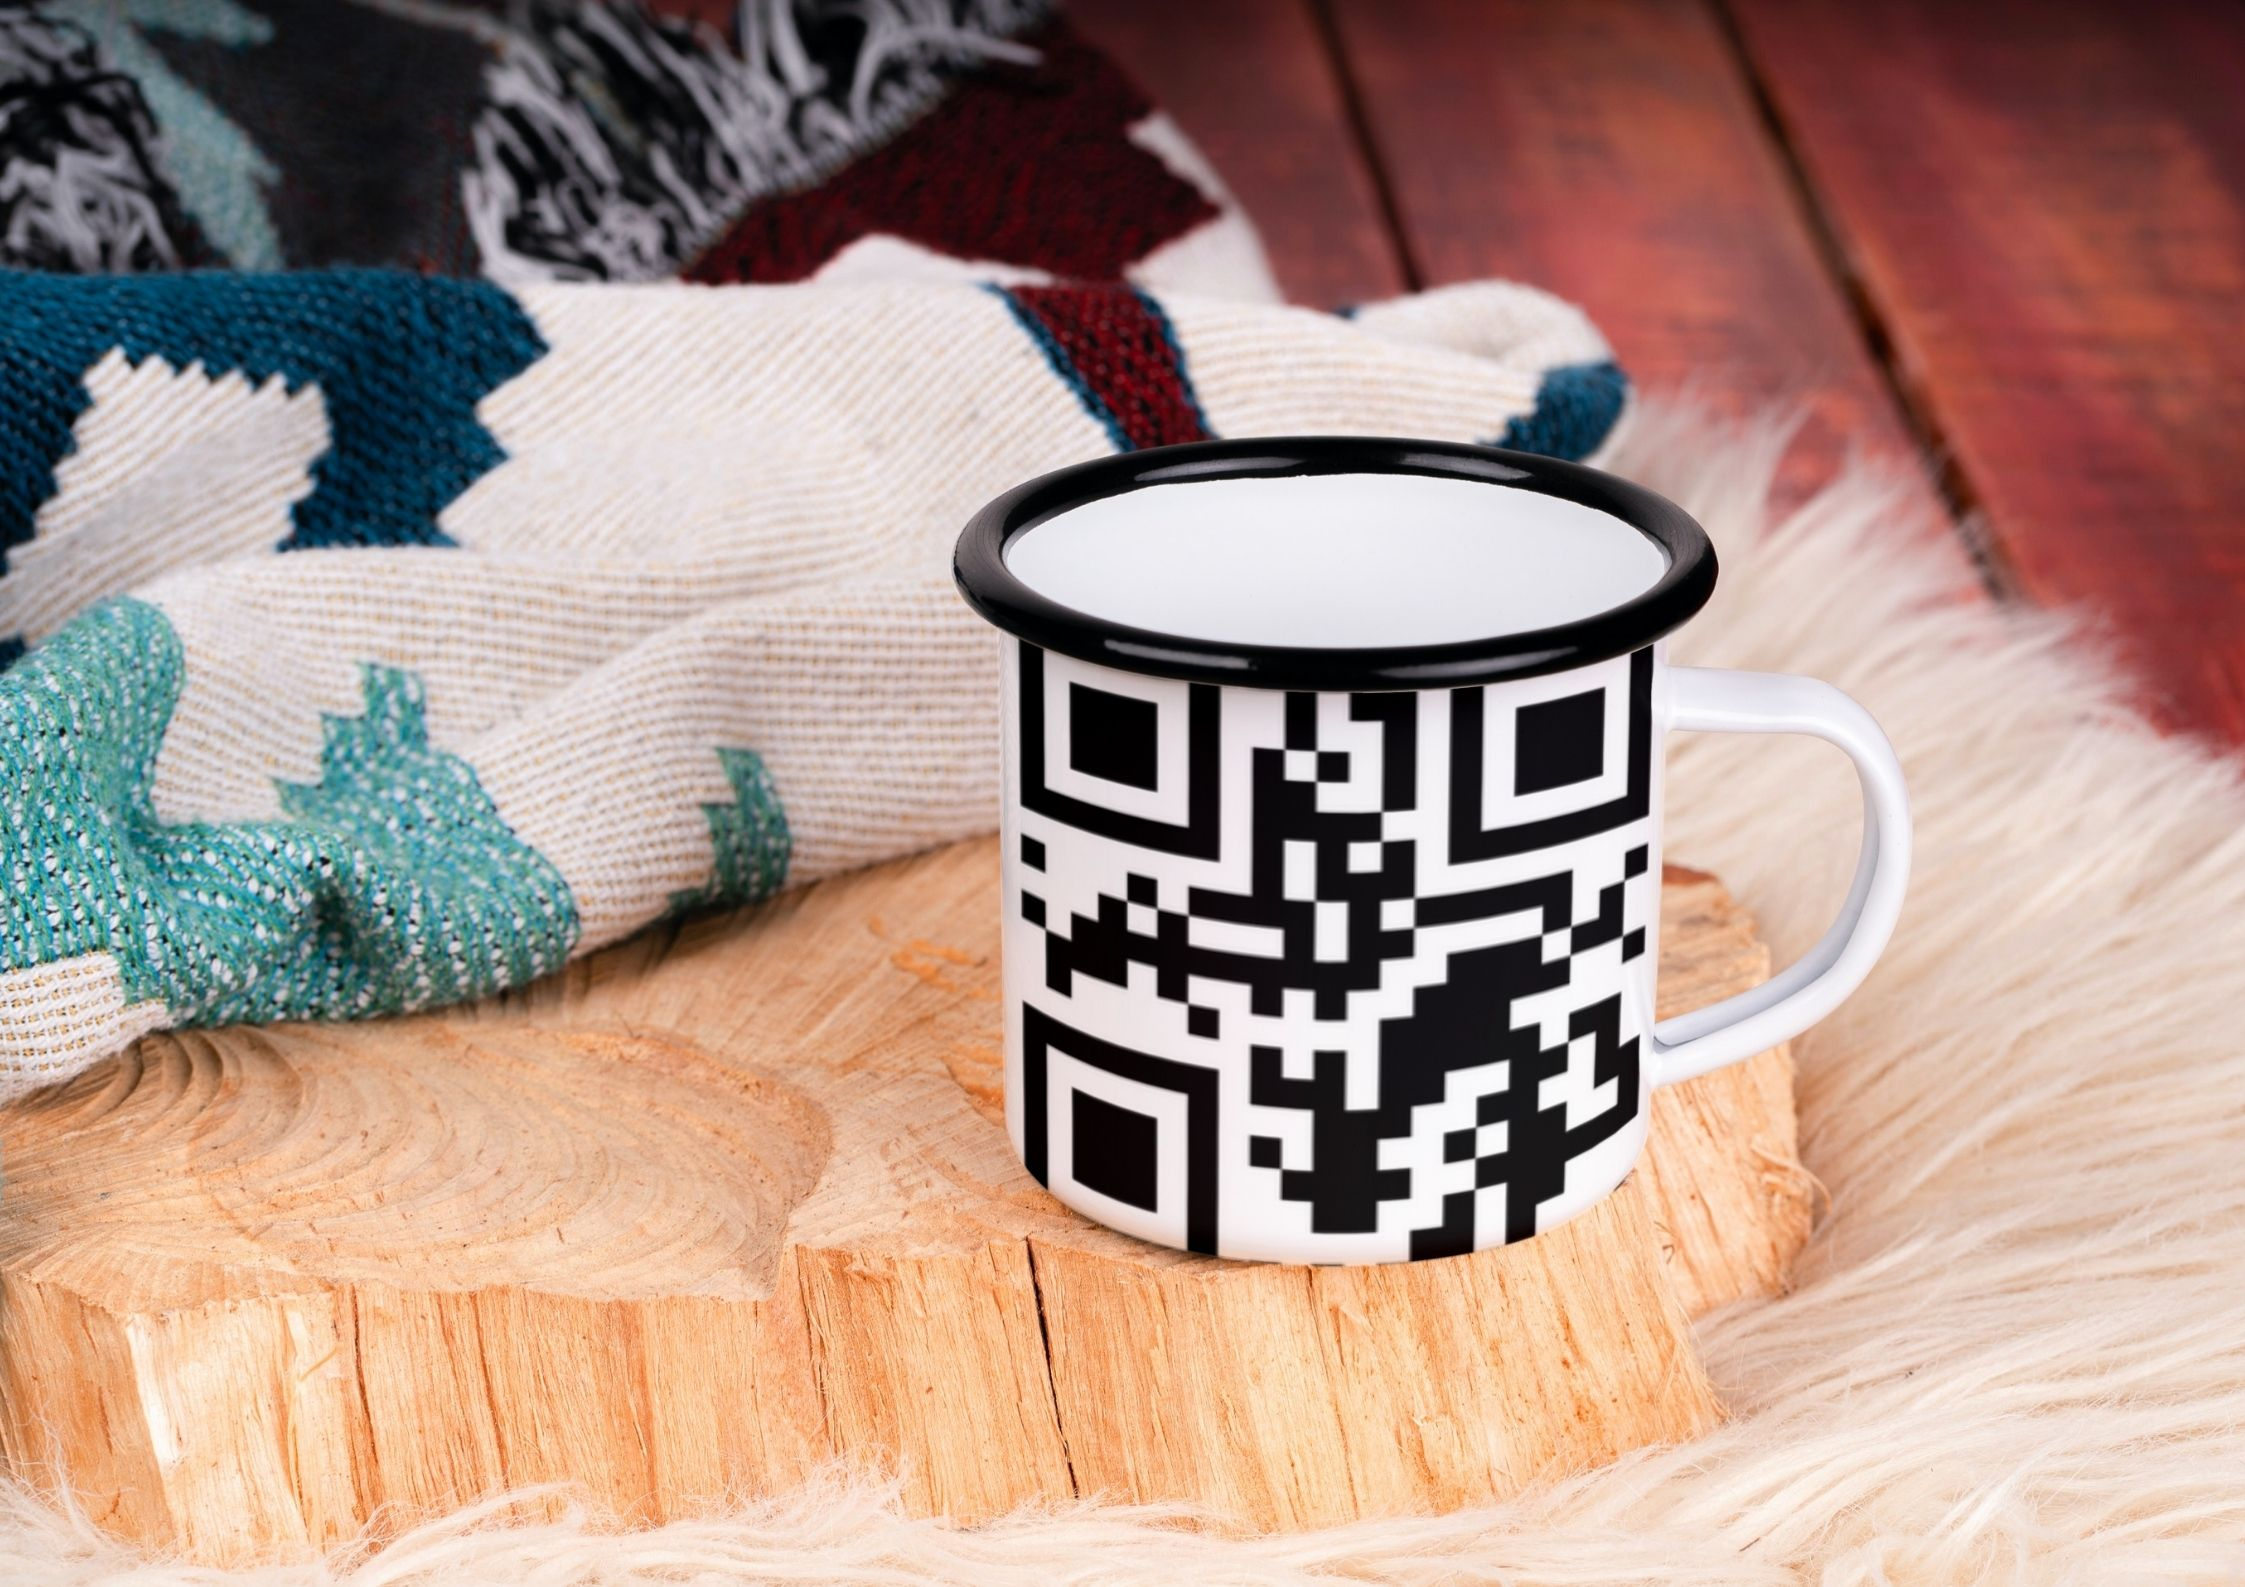 QR Codes on Cups